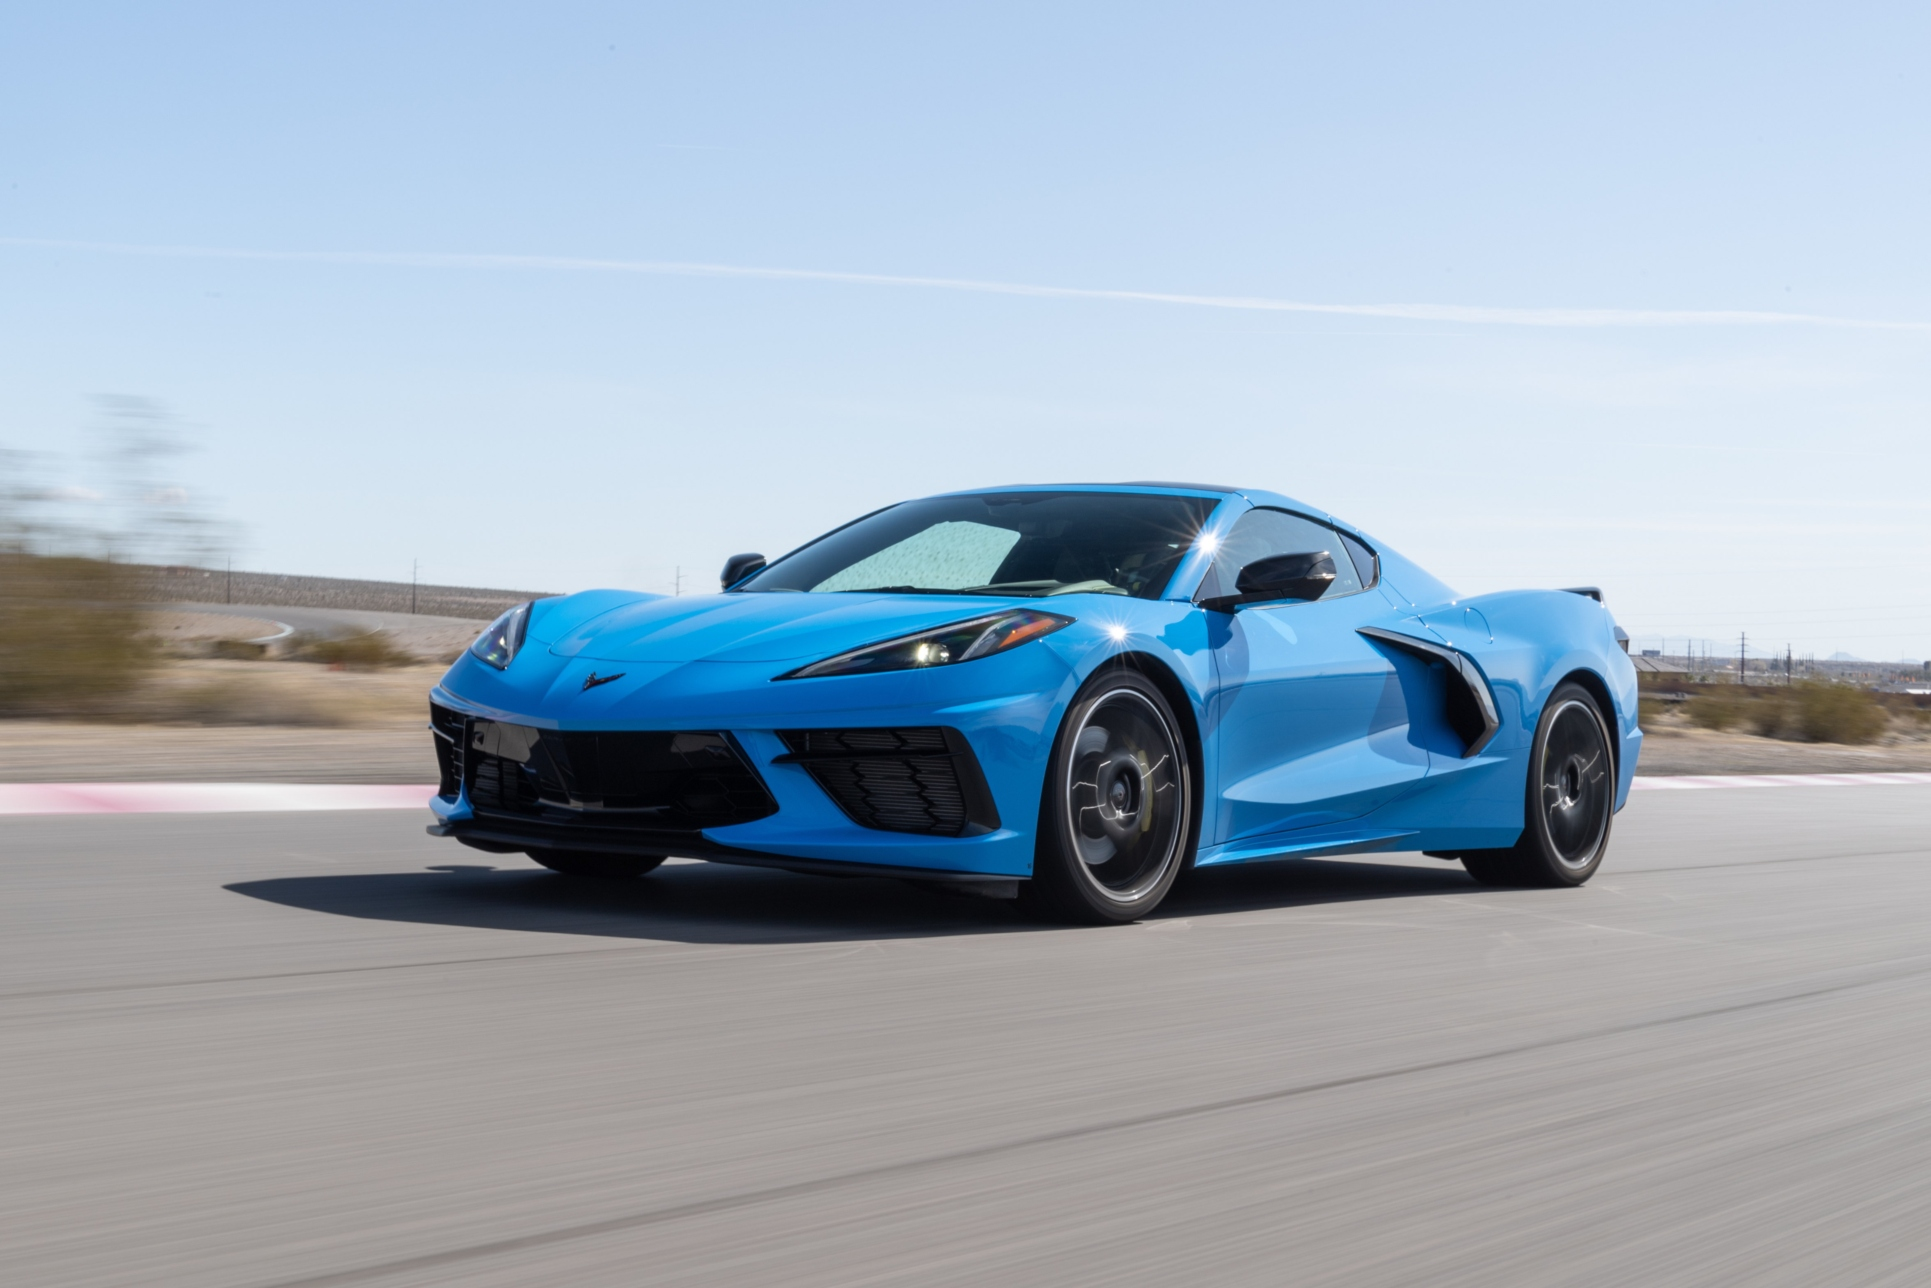 The Chevrolet Corvette Is Ranked As 2021's Fifth Most American-Made Car